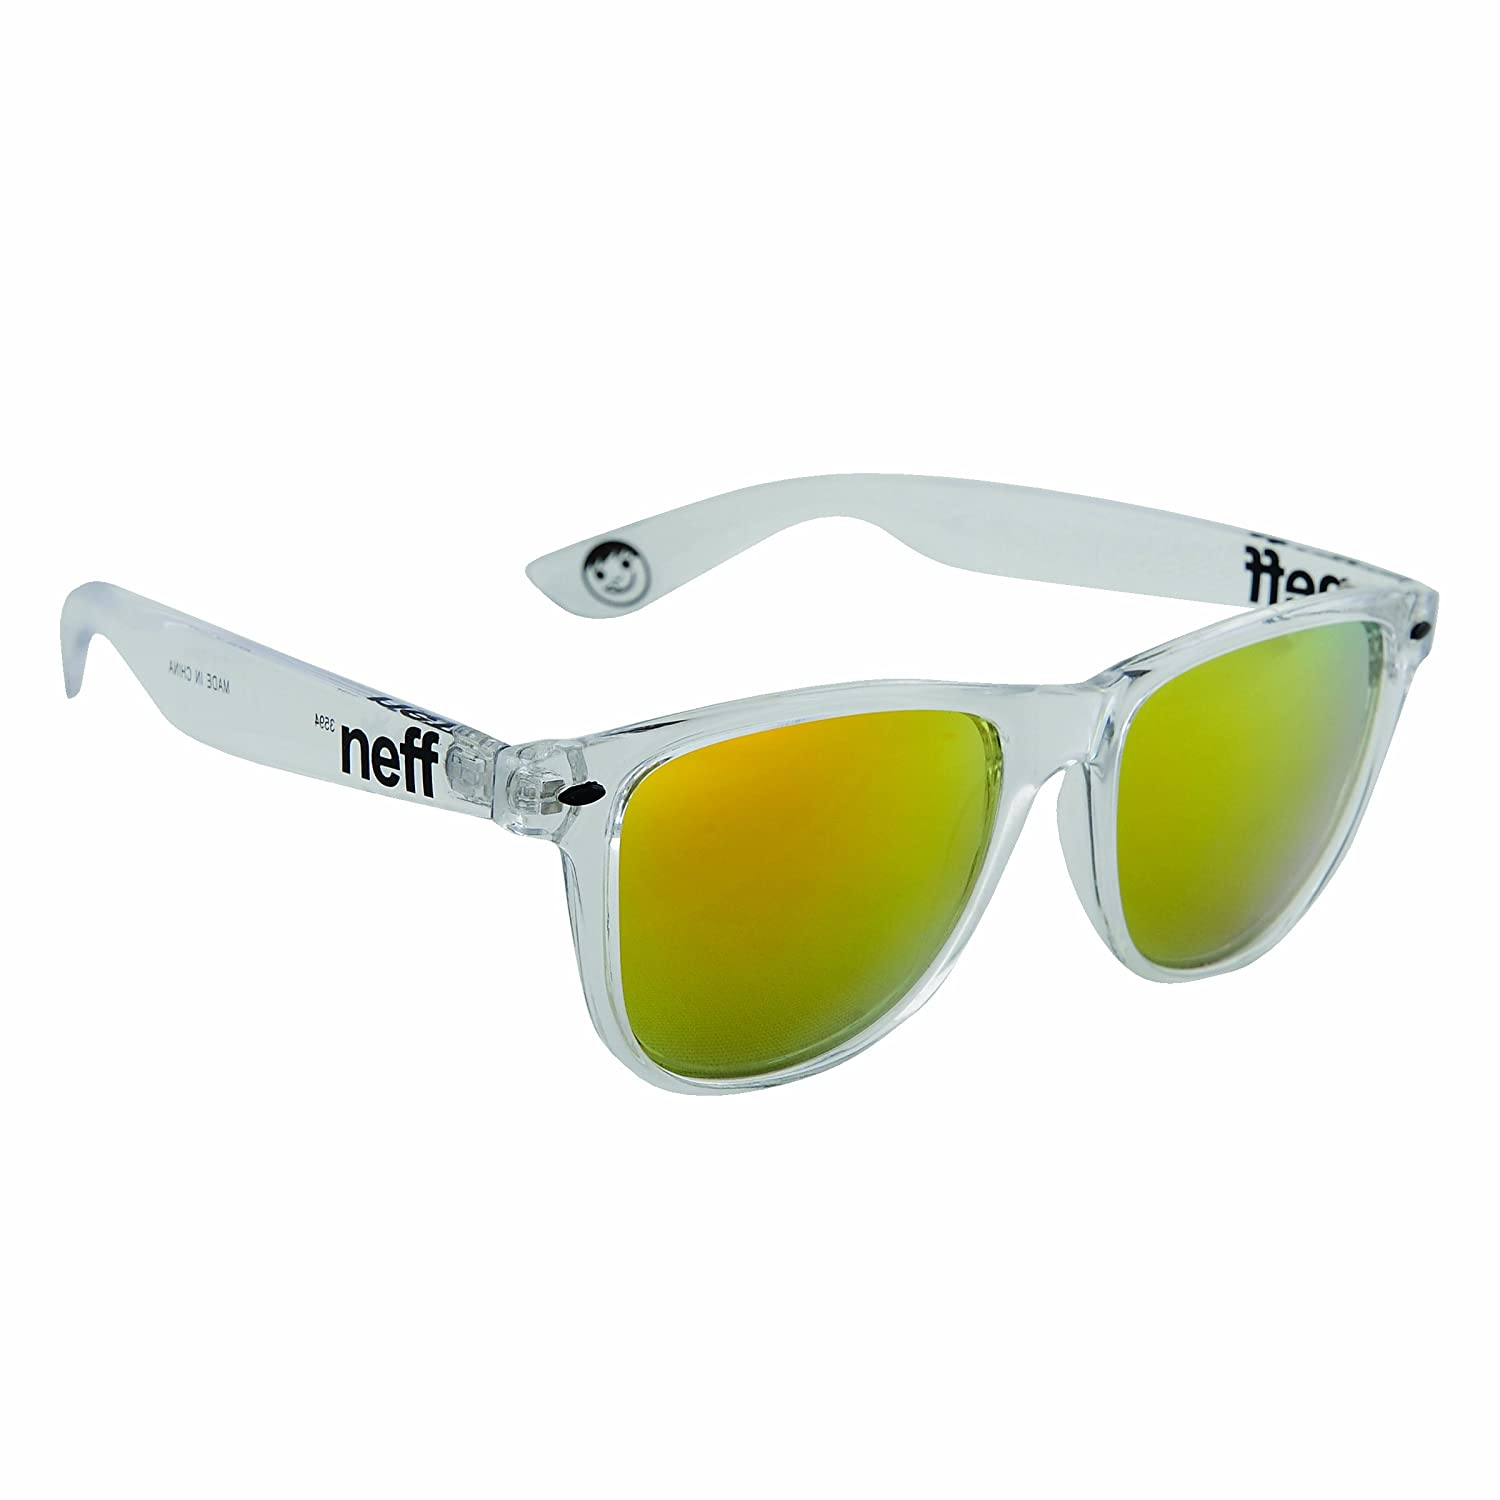 Neff Daily Sunglasses Clear